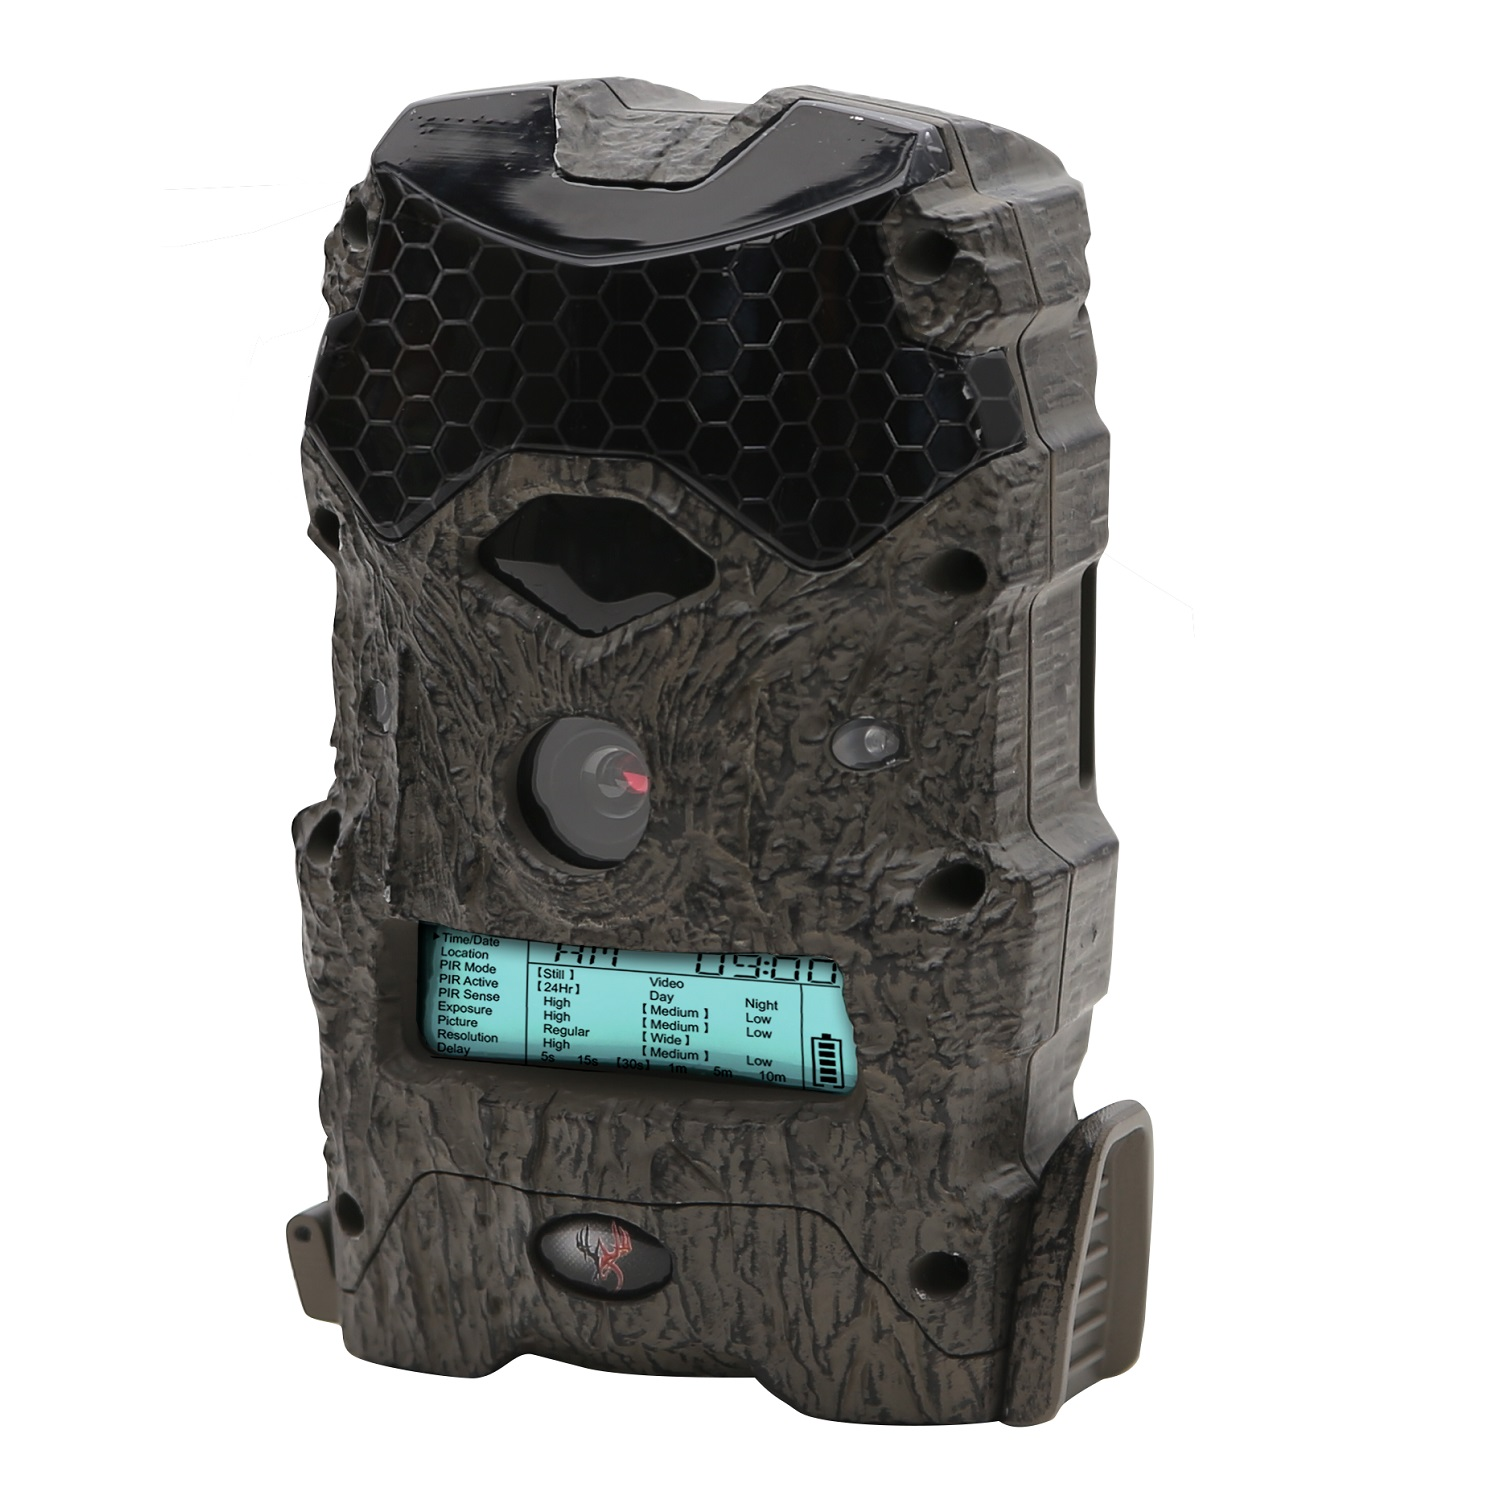 Mirage 16 Lightsout Game Camera